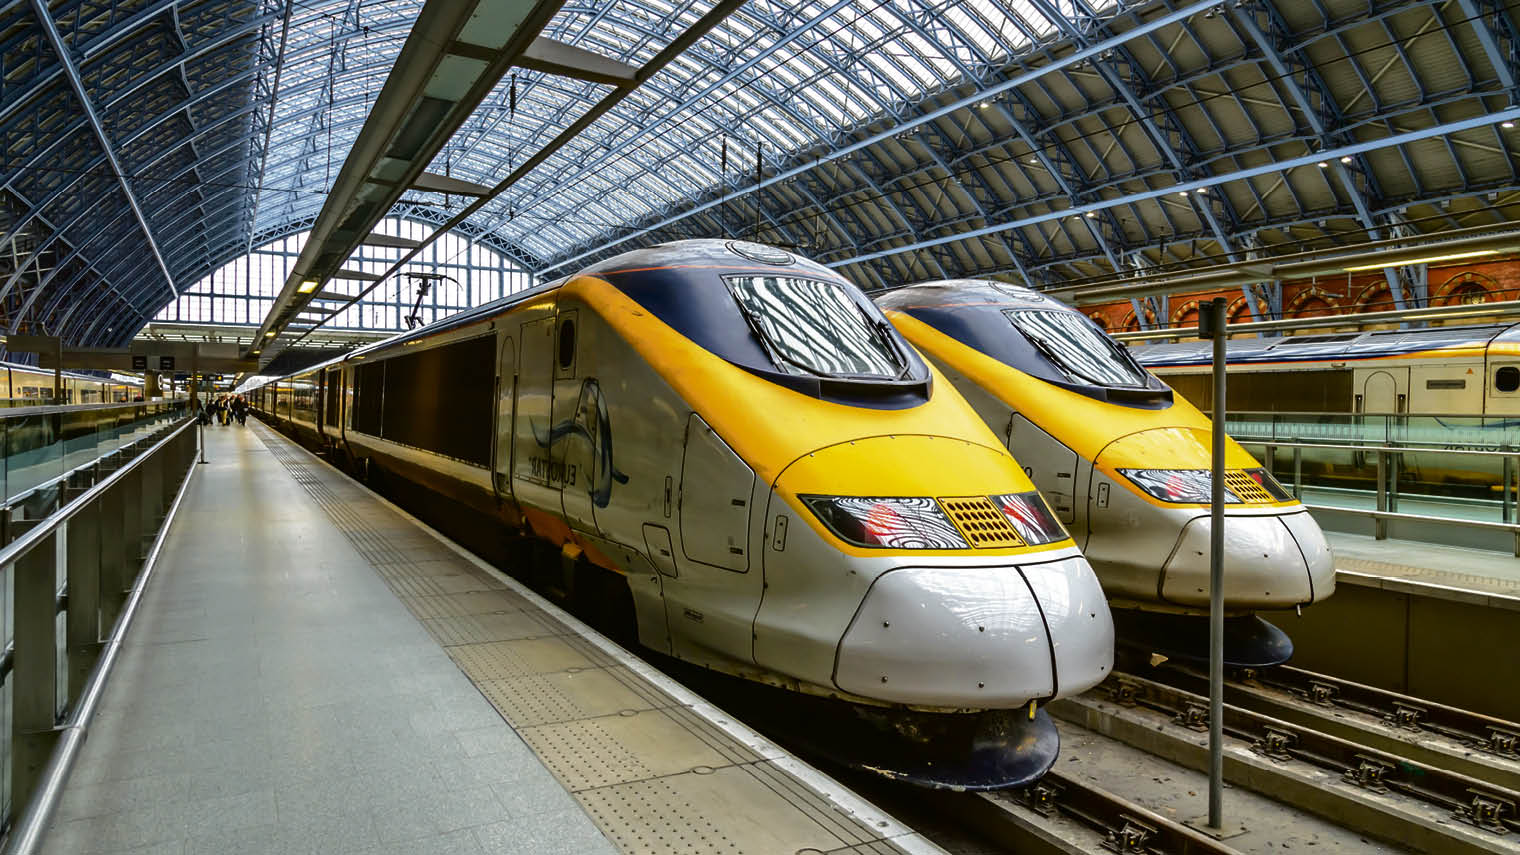 Eurostar's customer satisfaction text messages arrive as travellers pull into their destination station